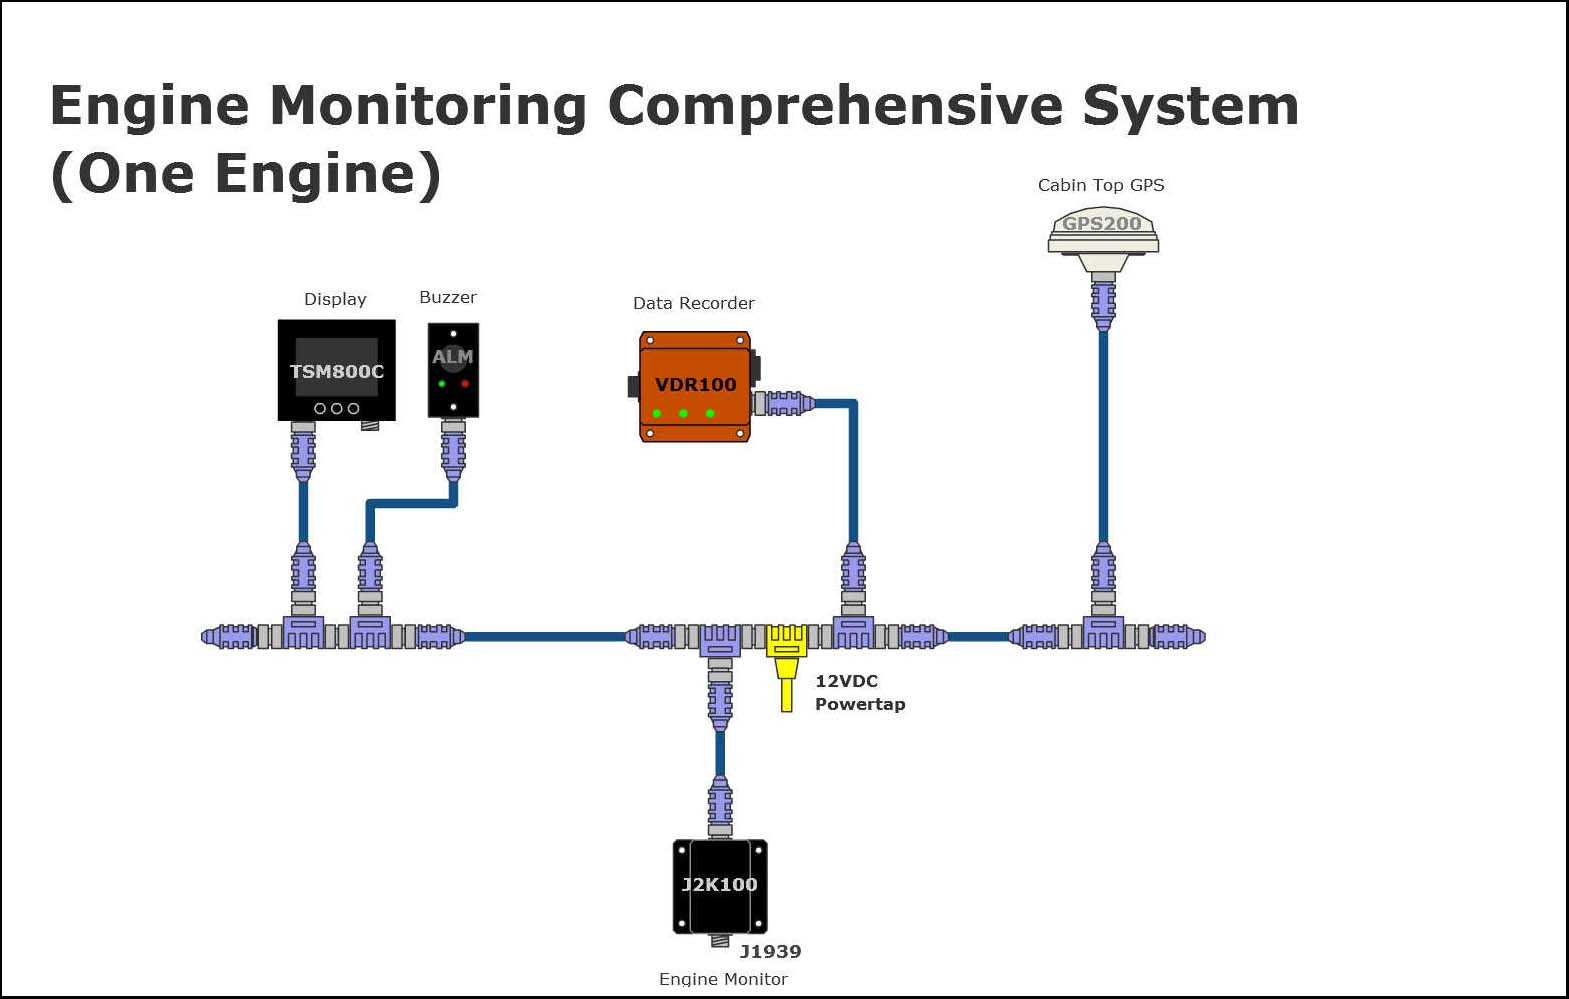 Maretron Comprehensive Engine Monitoring